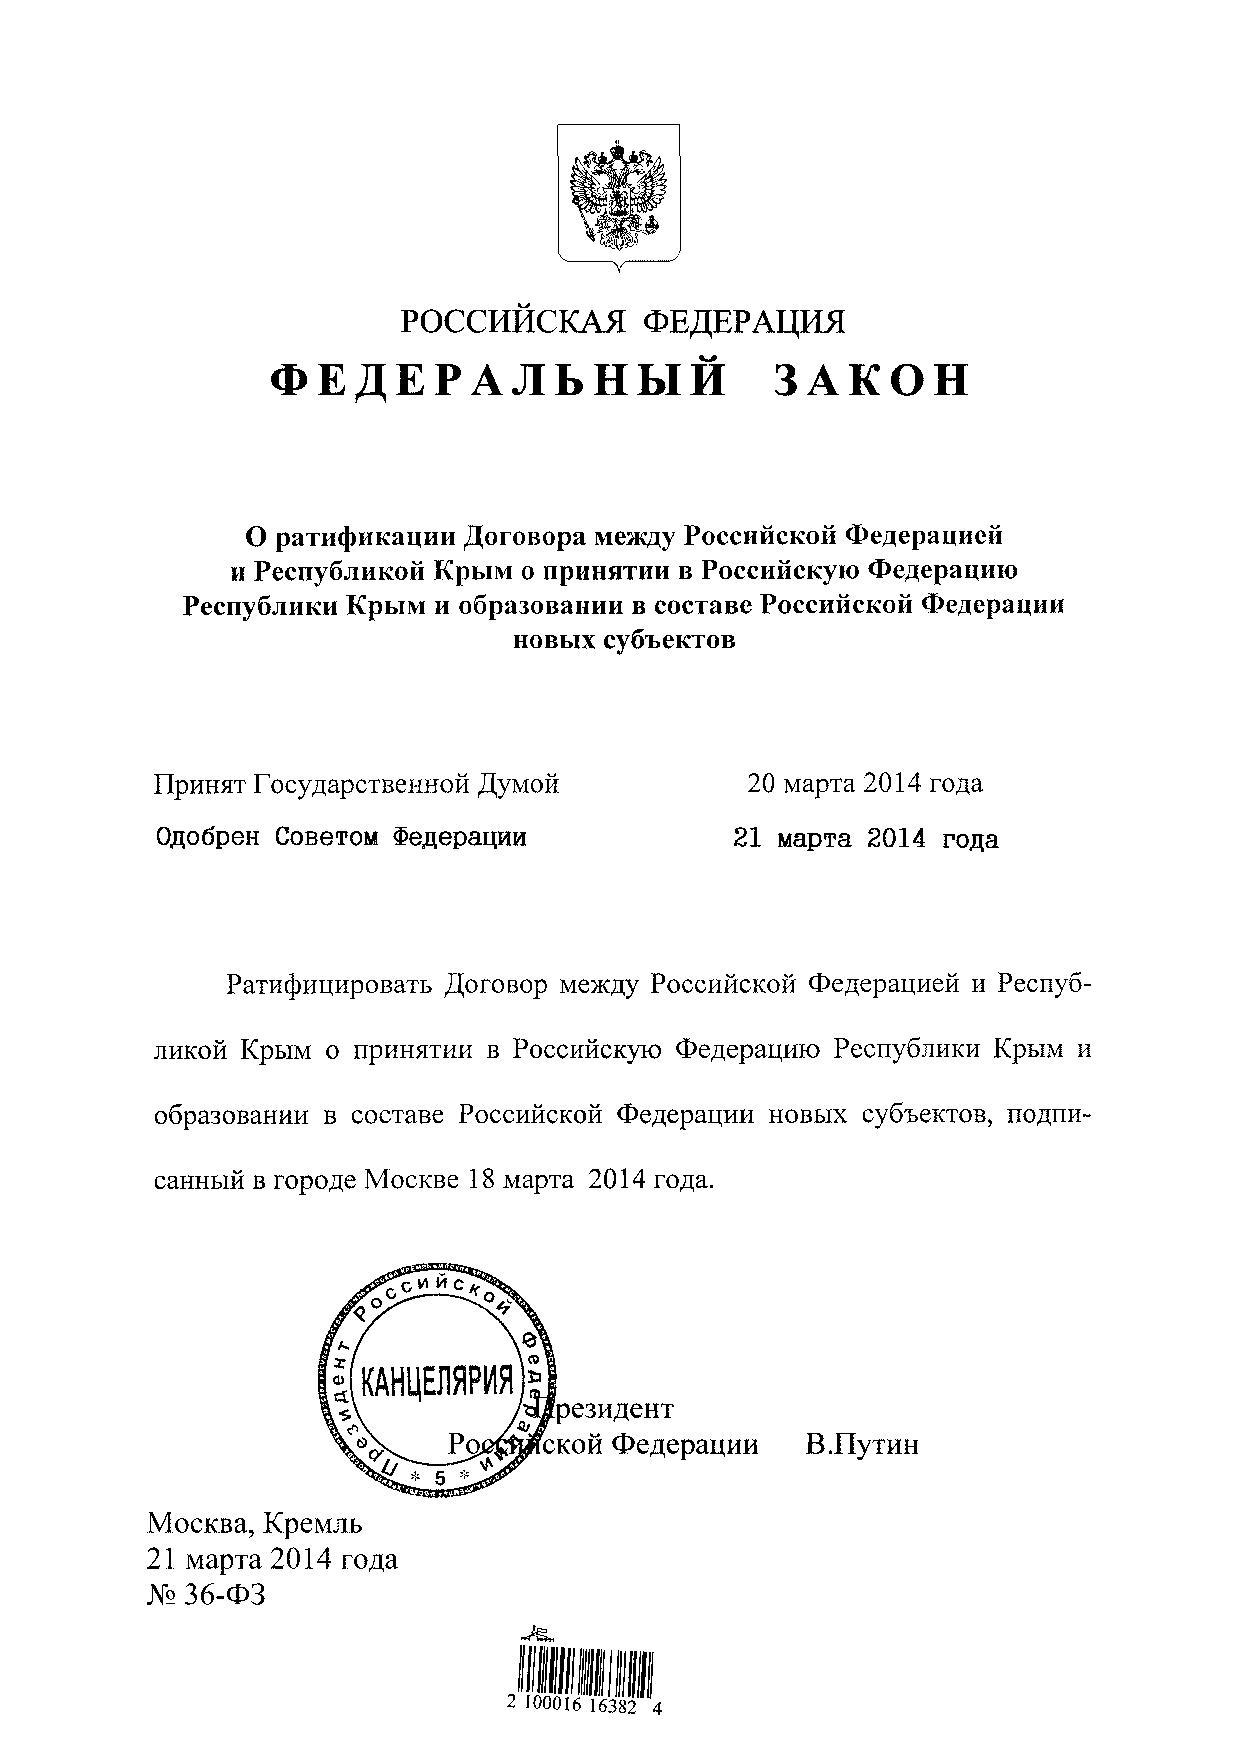 File Federal Law On Ratifying The Agreement Between The Russian